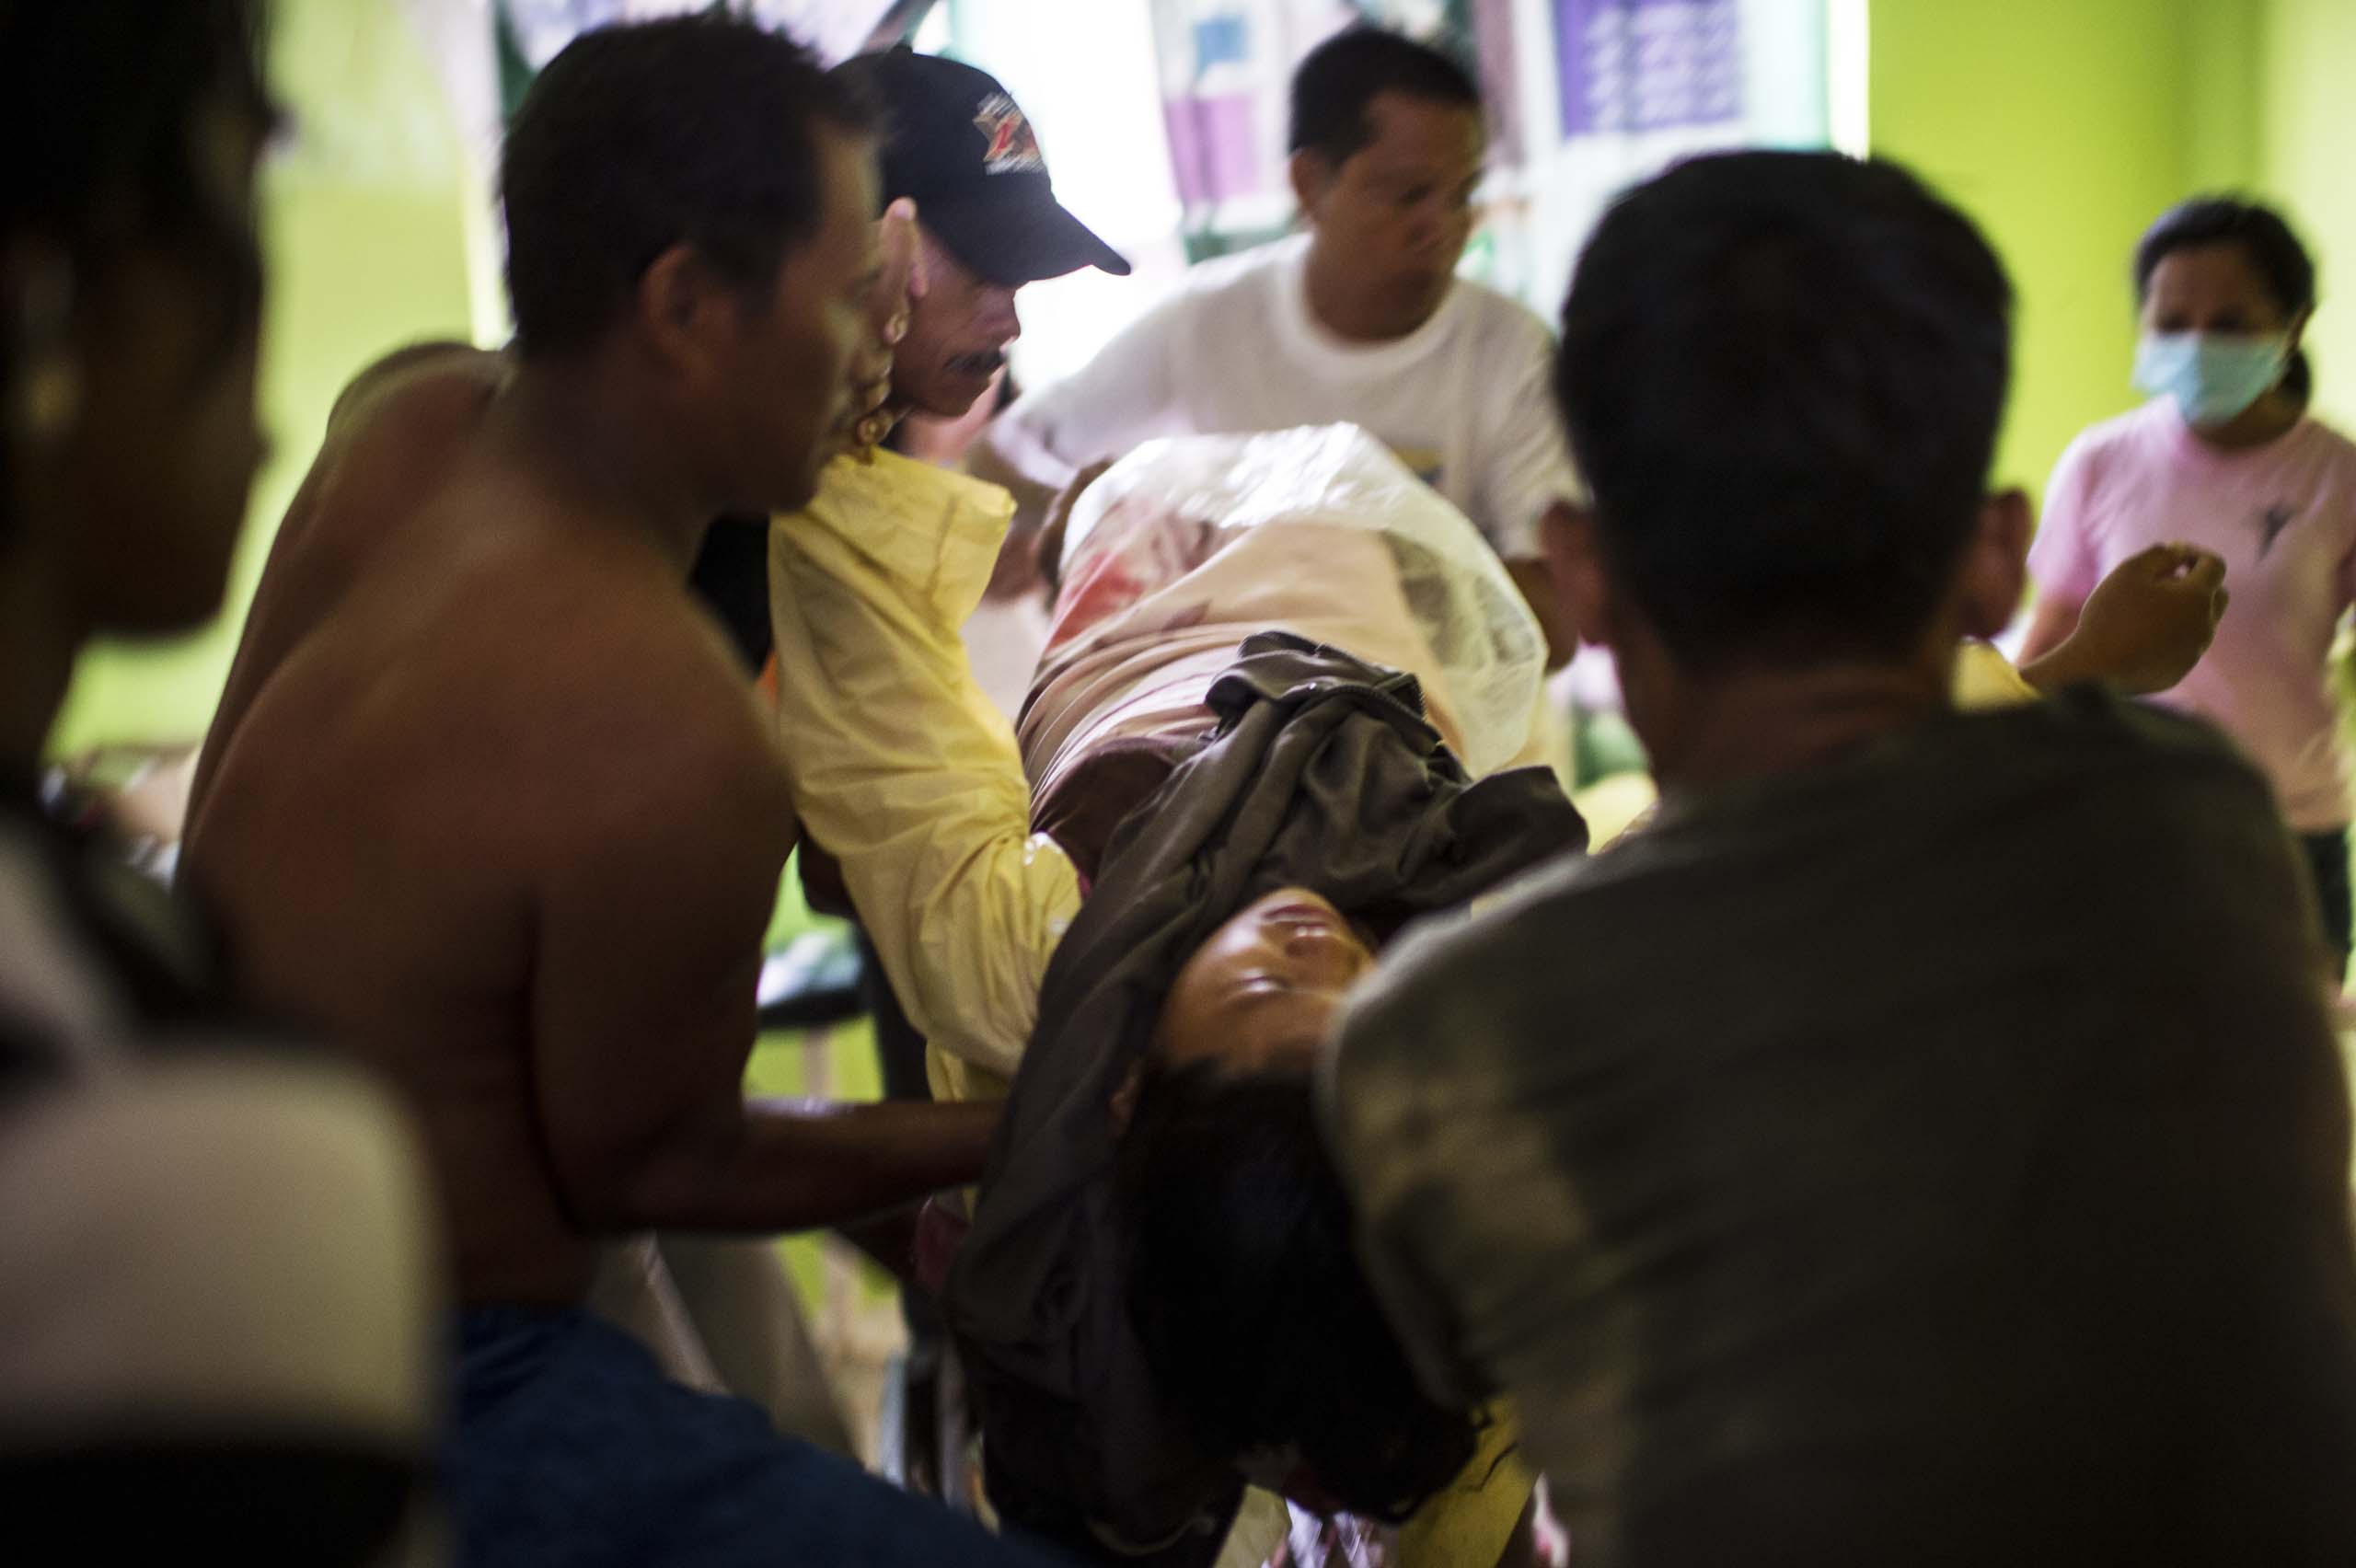 Jan.11, 2014: Analyn Pesado and the baby arrive at the clinic in Tolosa.